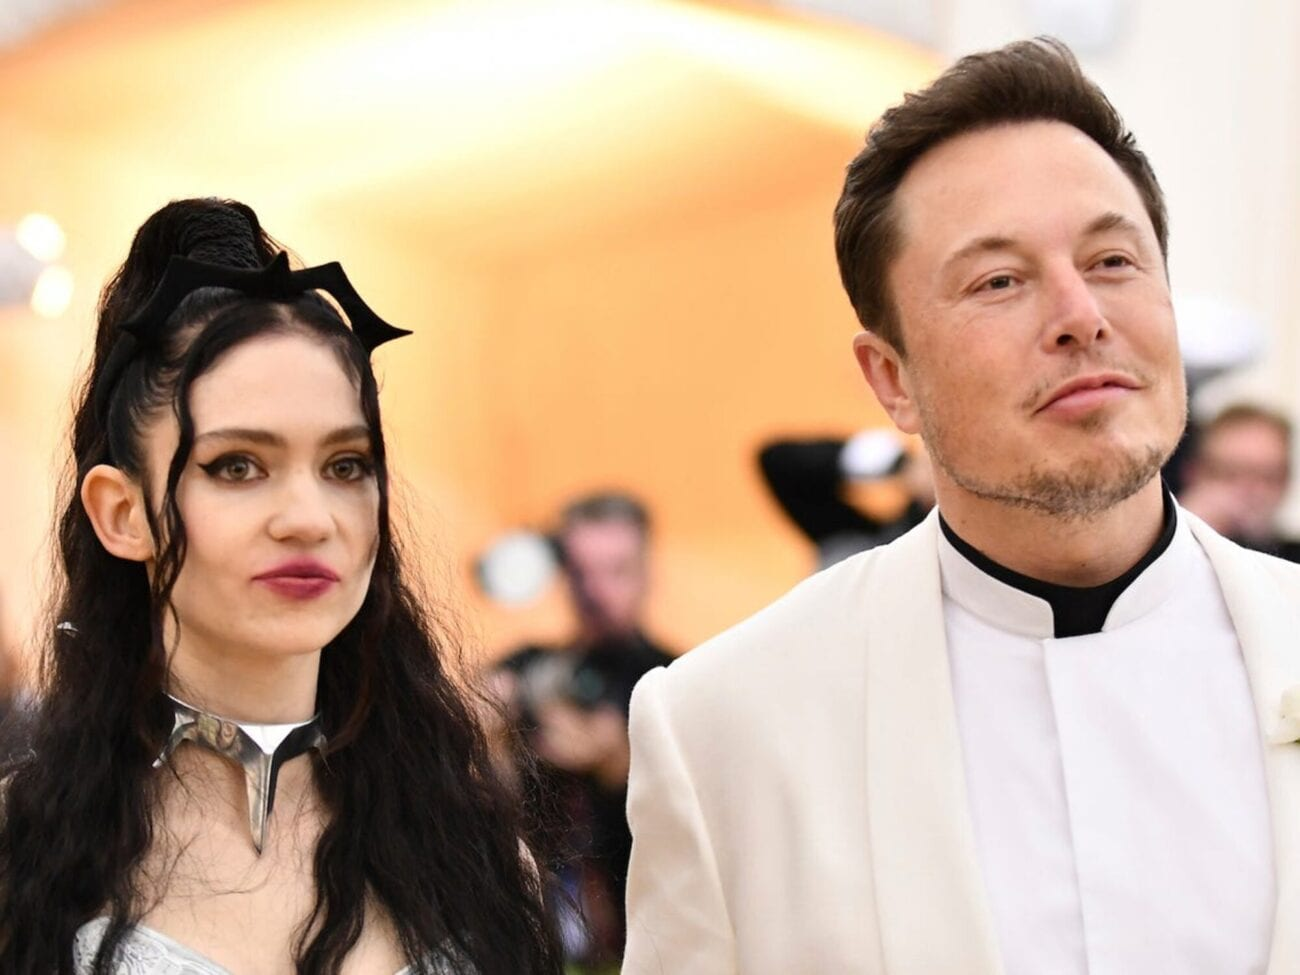 Elon Musk is now the richest person in the world. While unmarried, he's dating the musician Grimes. Get to know his famous girlfriend.